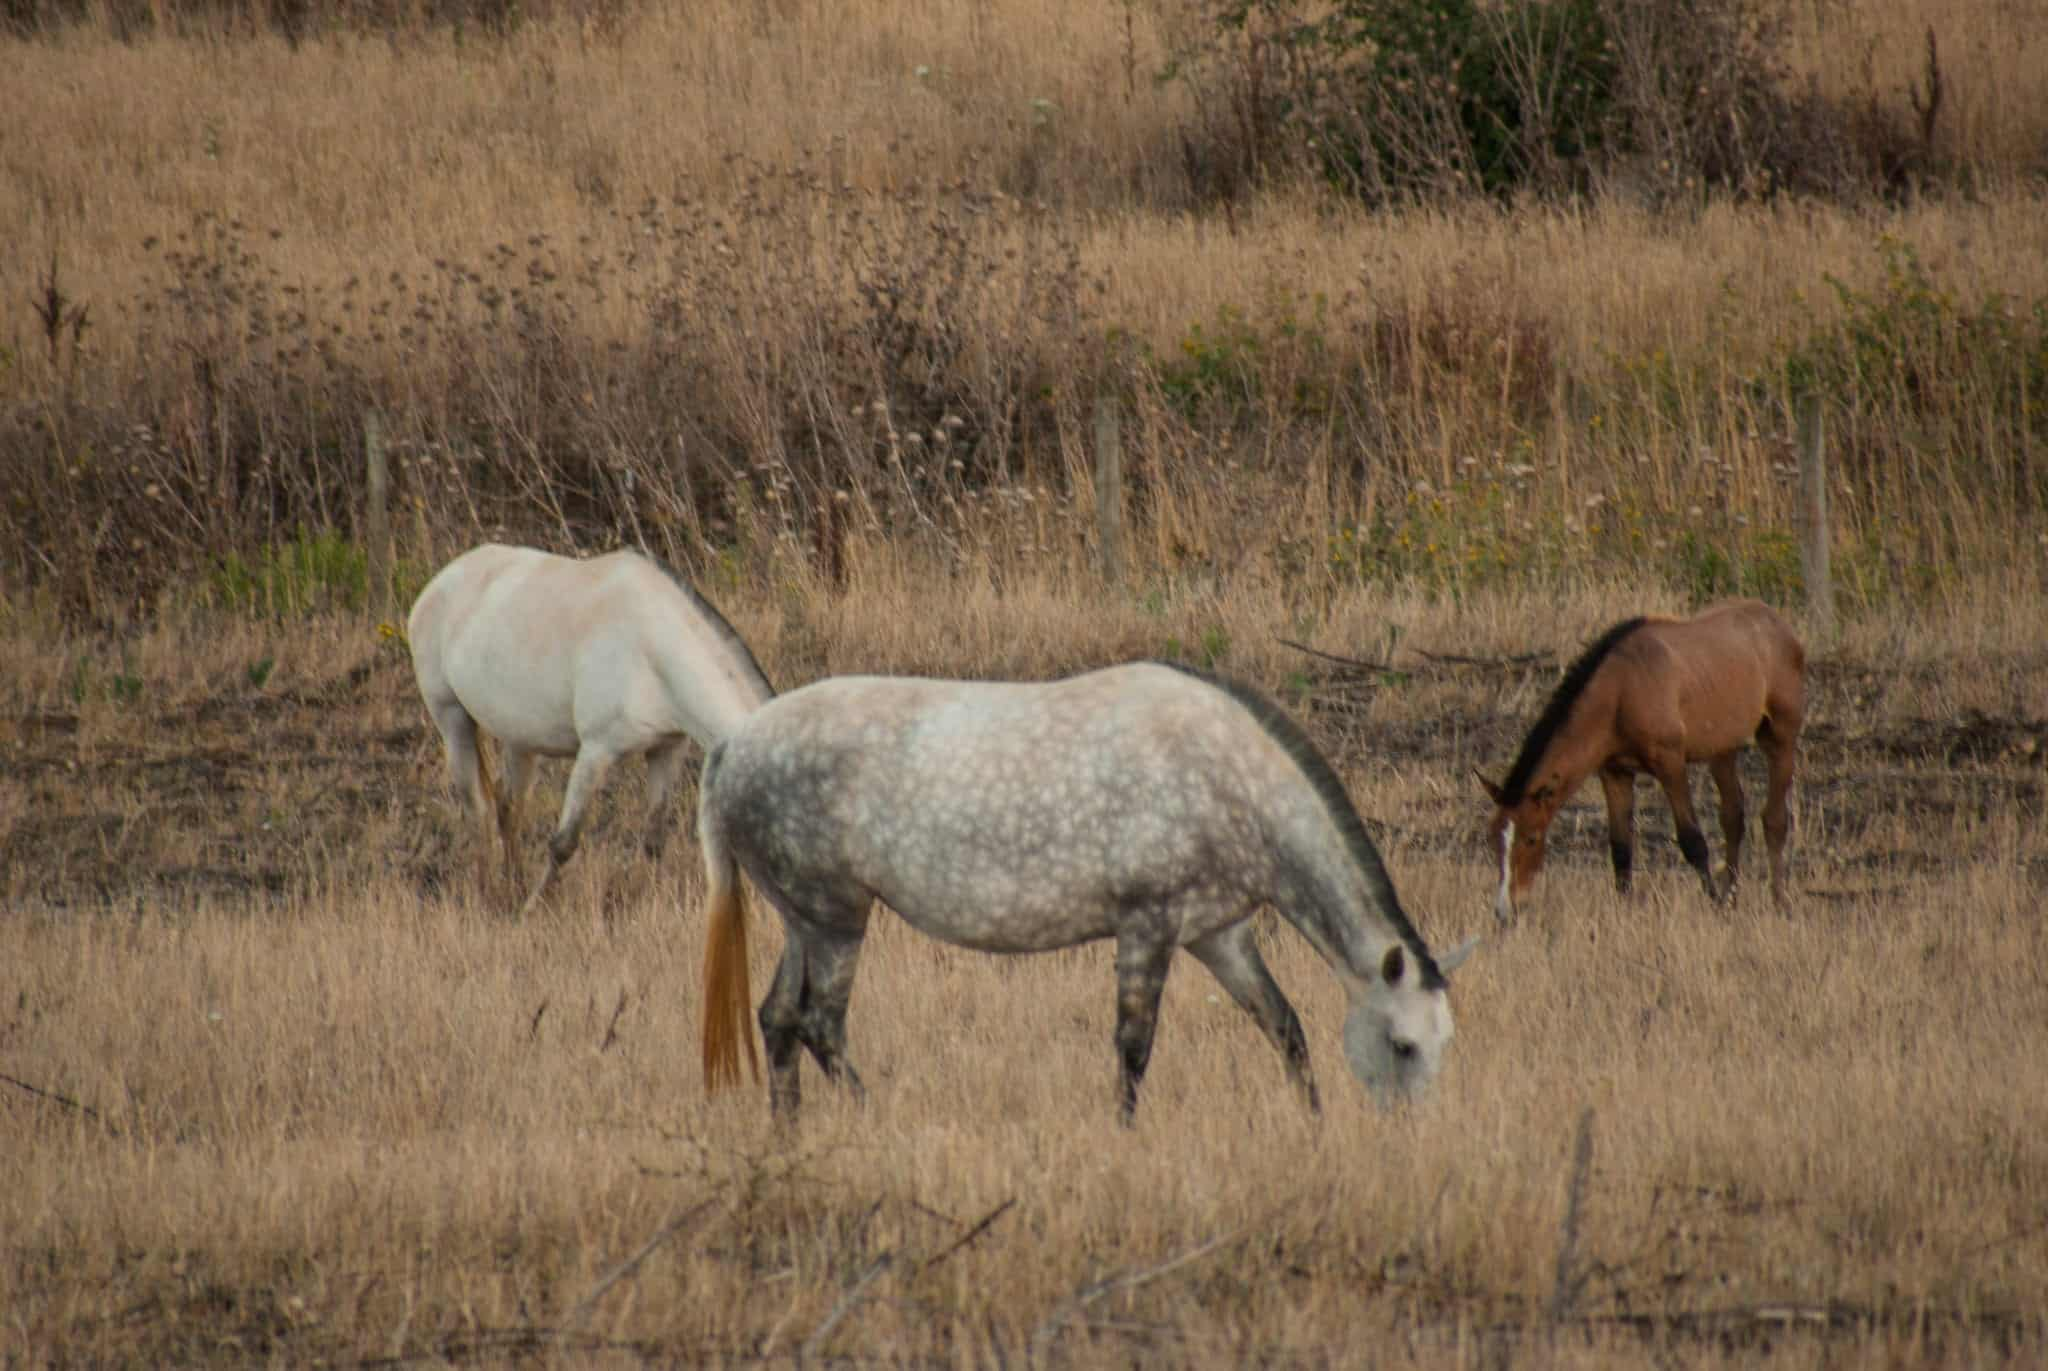 Lusitano Horses in the wild